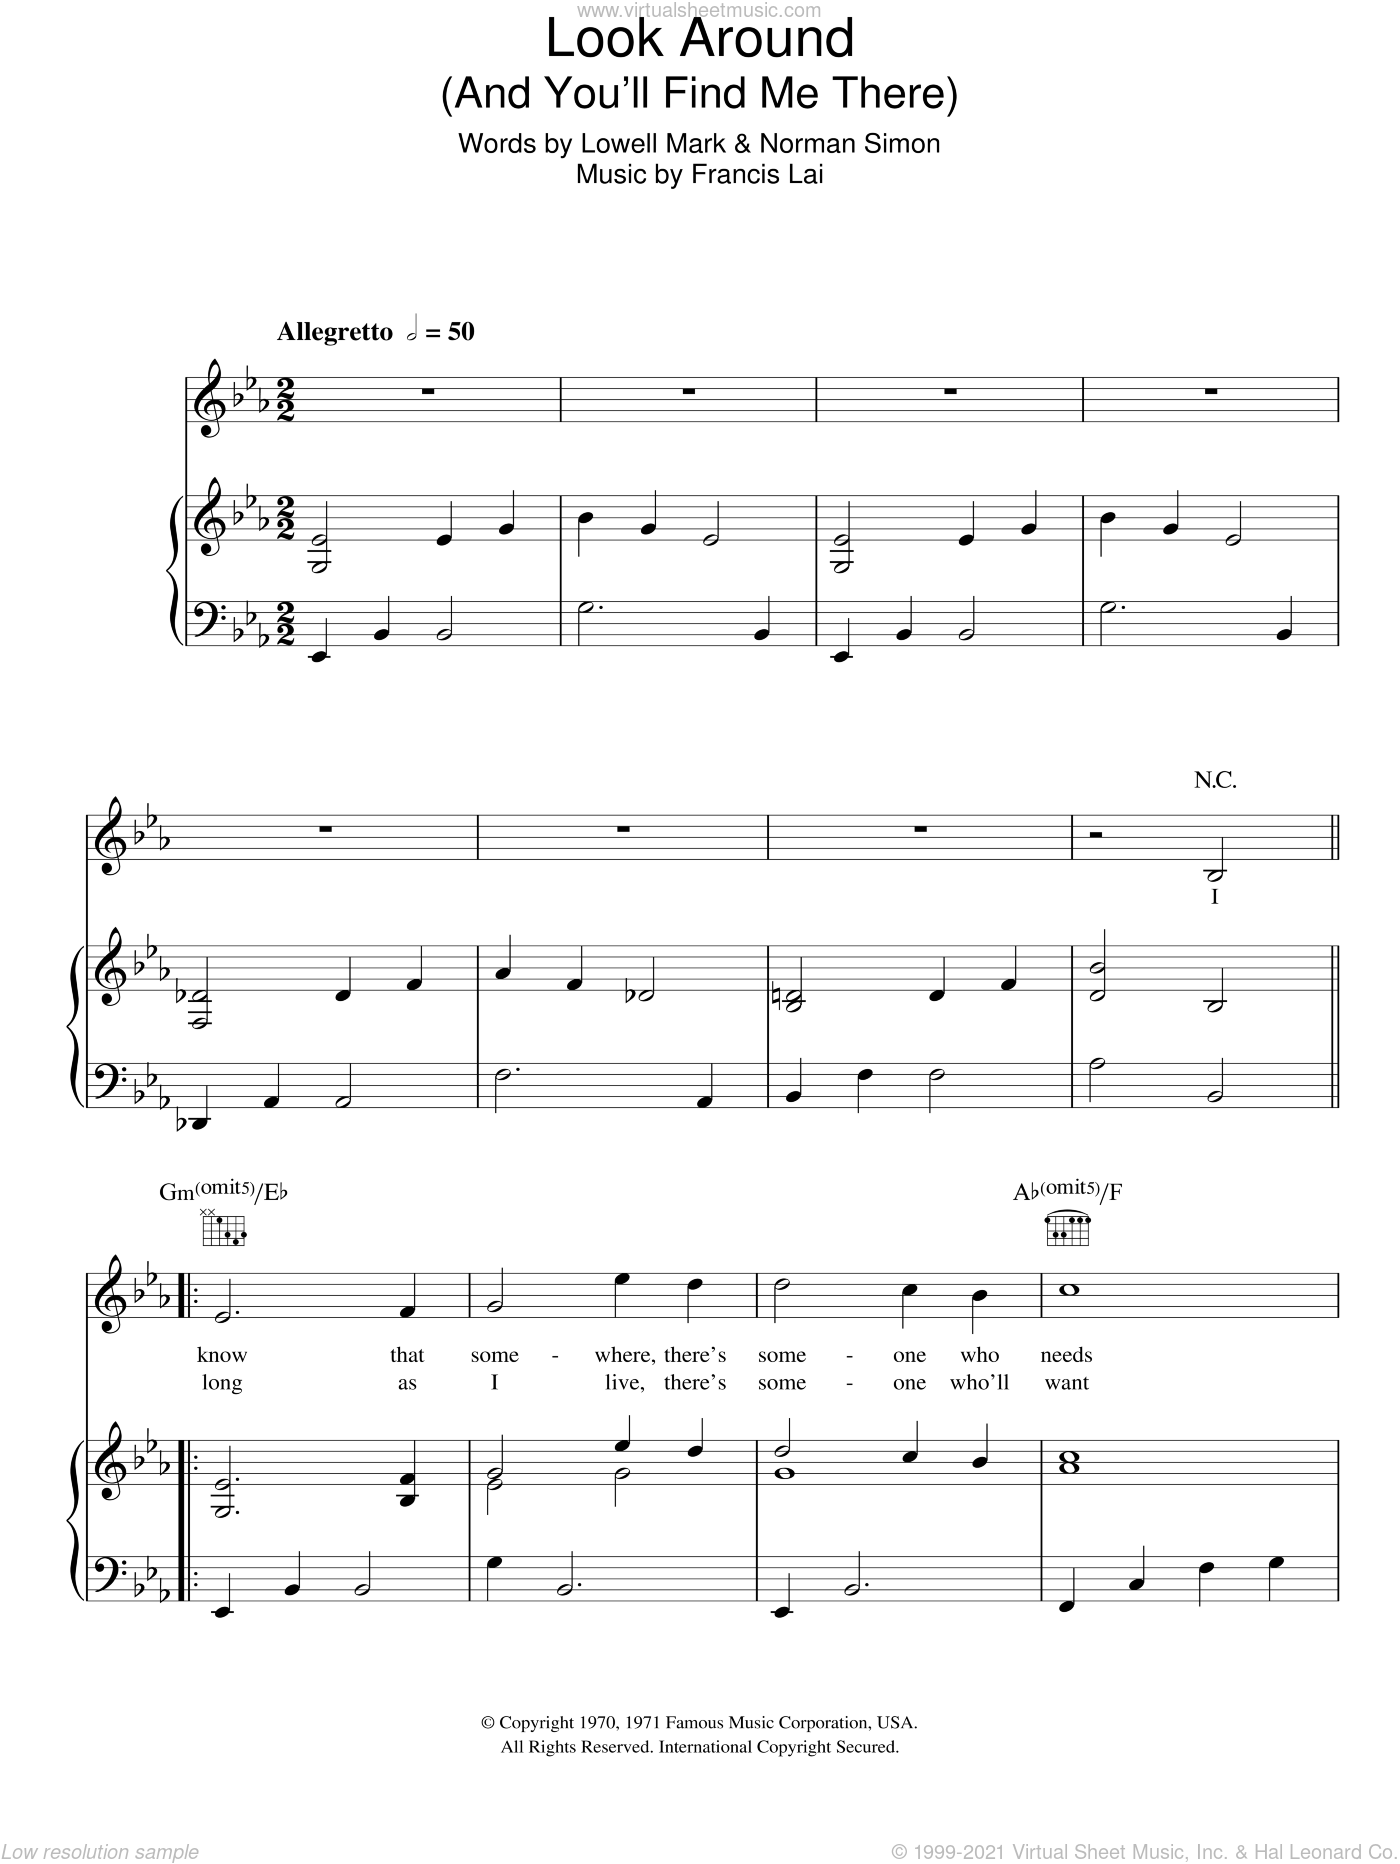 Look Around (And You'll Find Me There) sheet music for voice, piano or guitar by Norman Simon